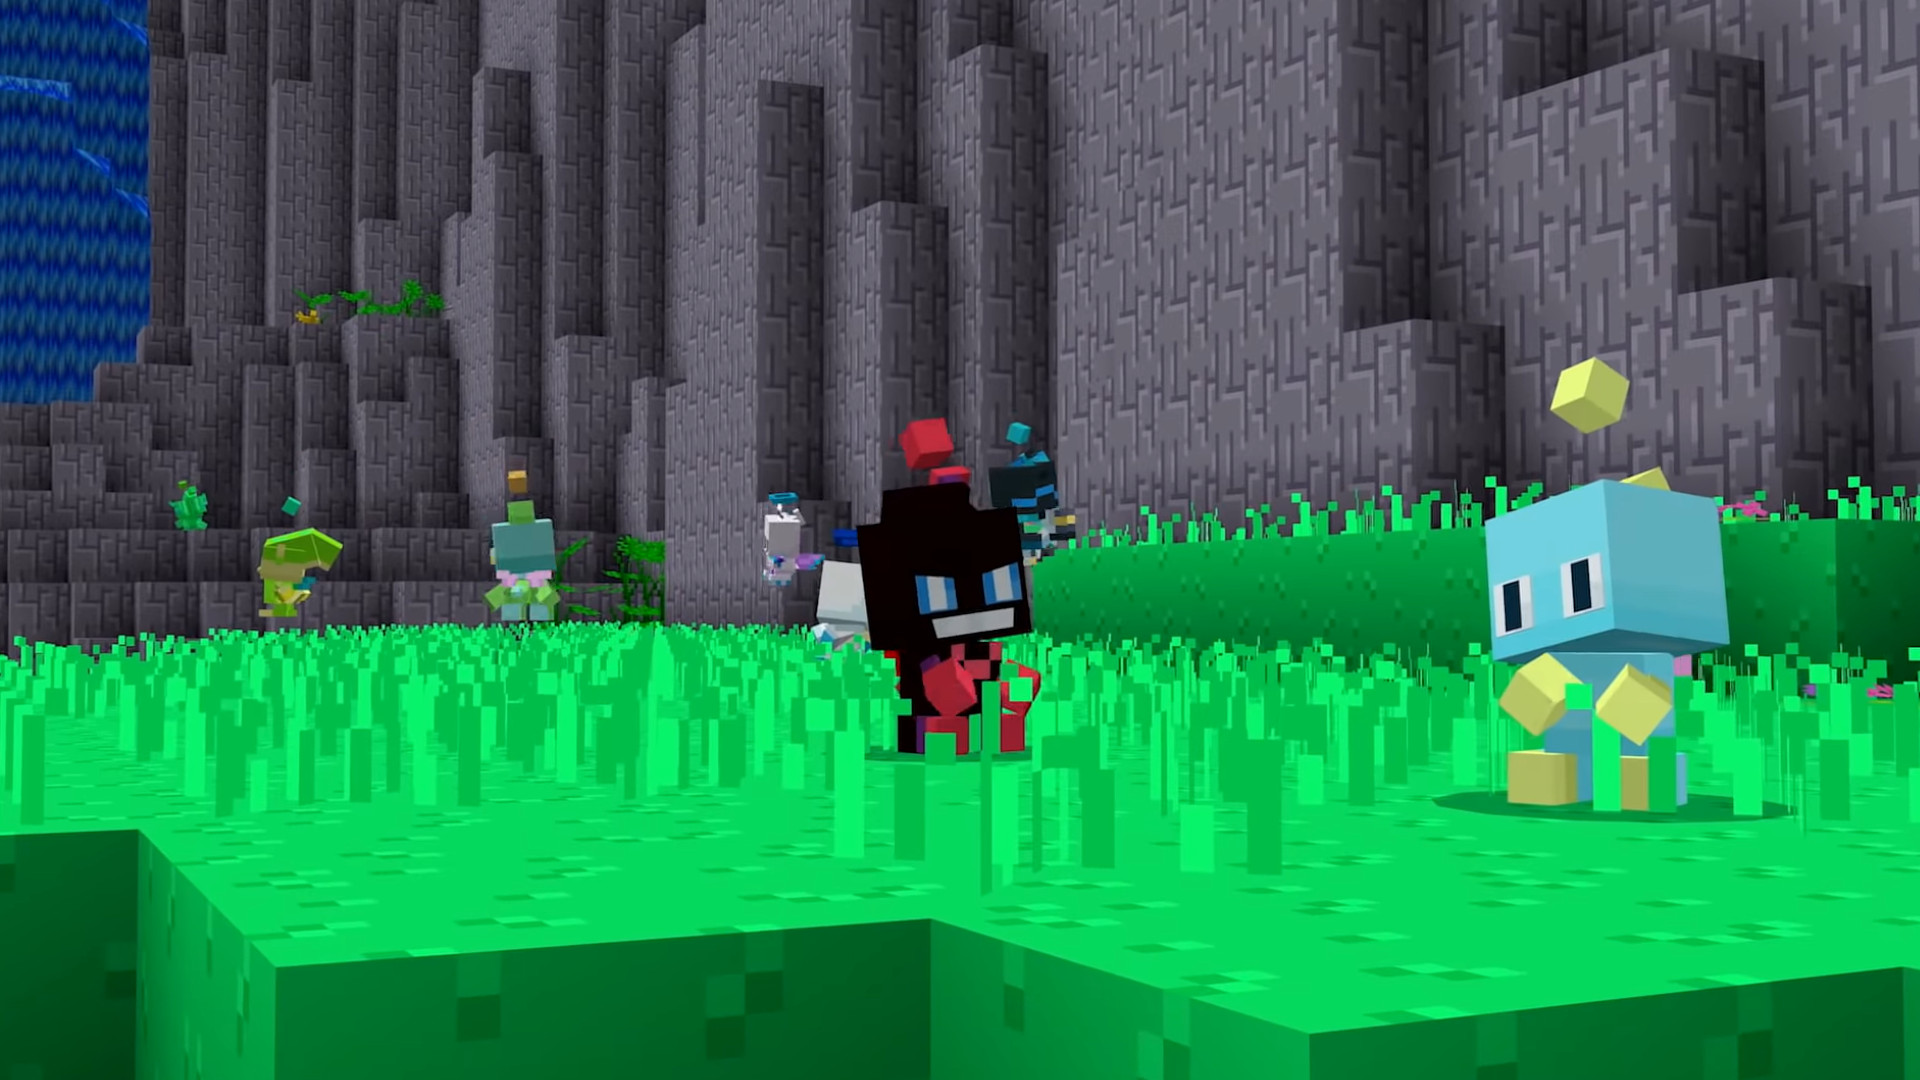 They put full Sonic levels and a Chao Garden in this Minecraft DLC